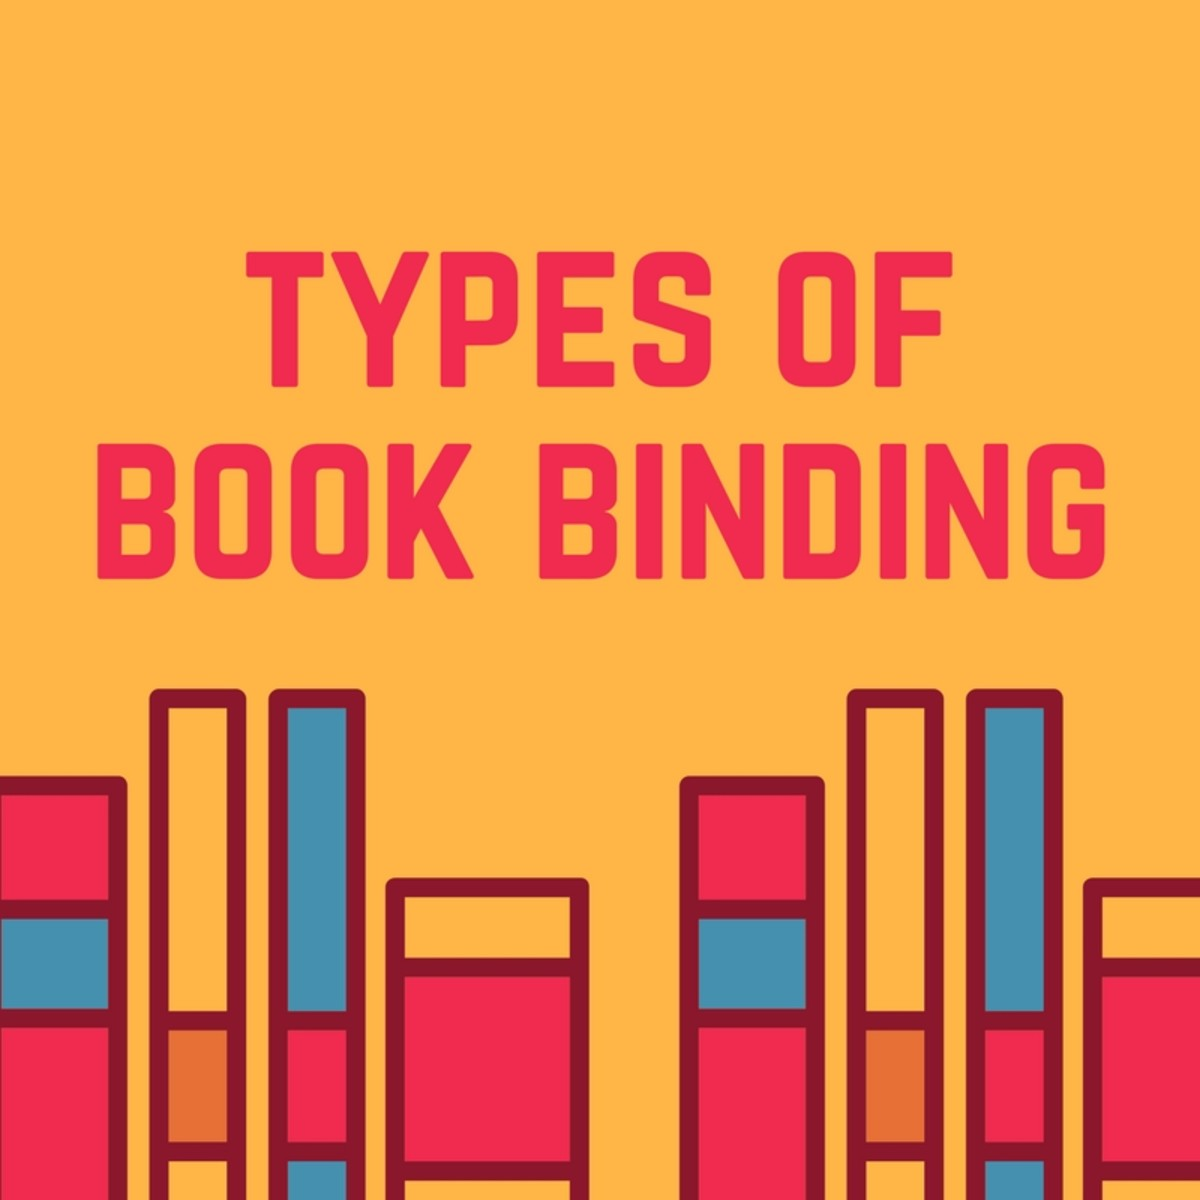 Types of book binding owlcation in solutioingenieria Gallery